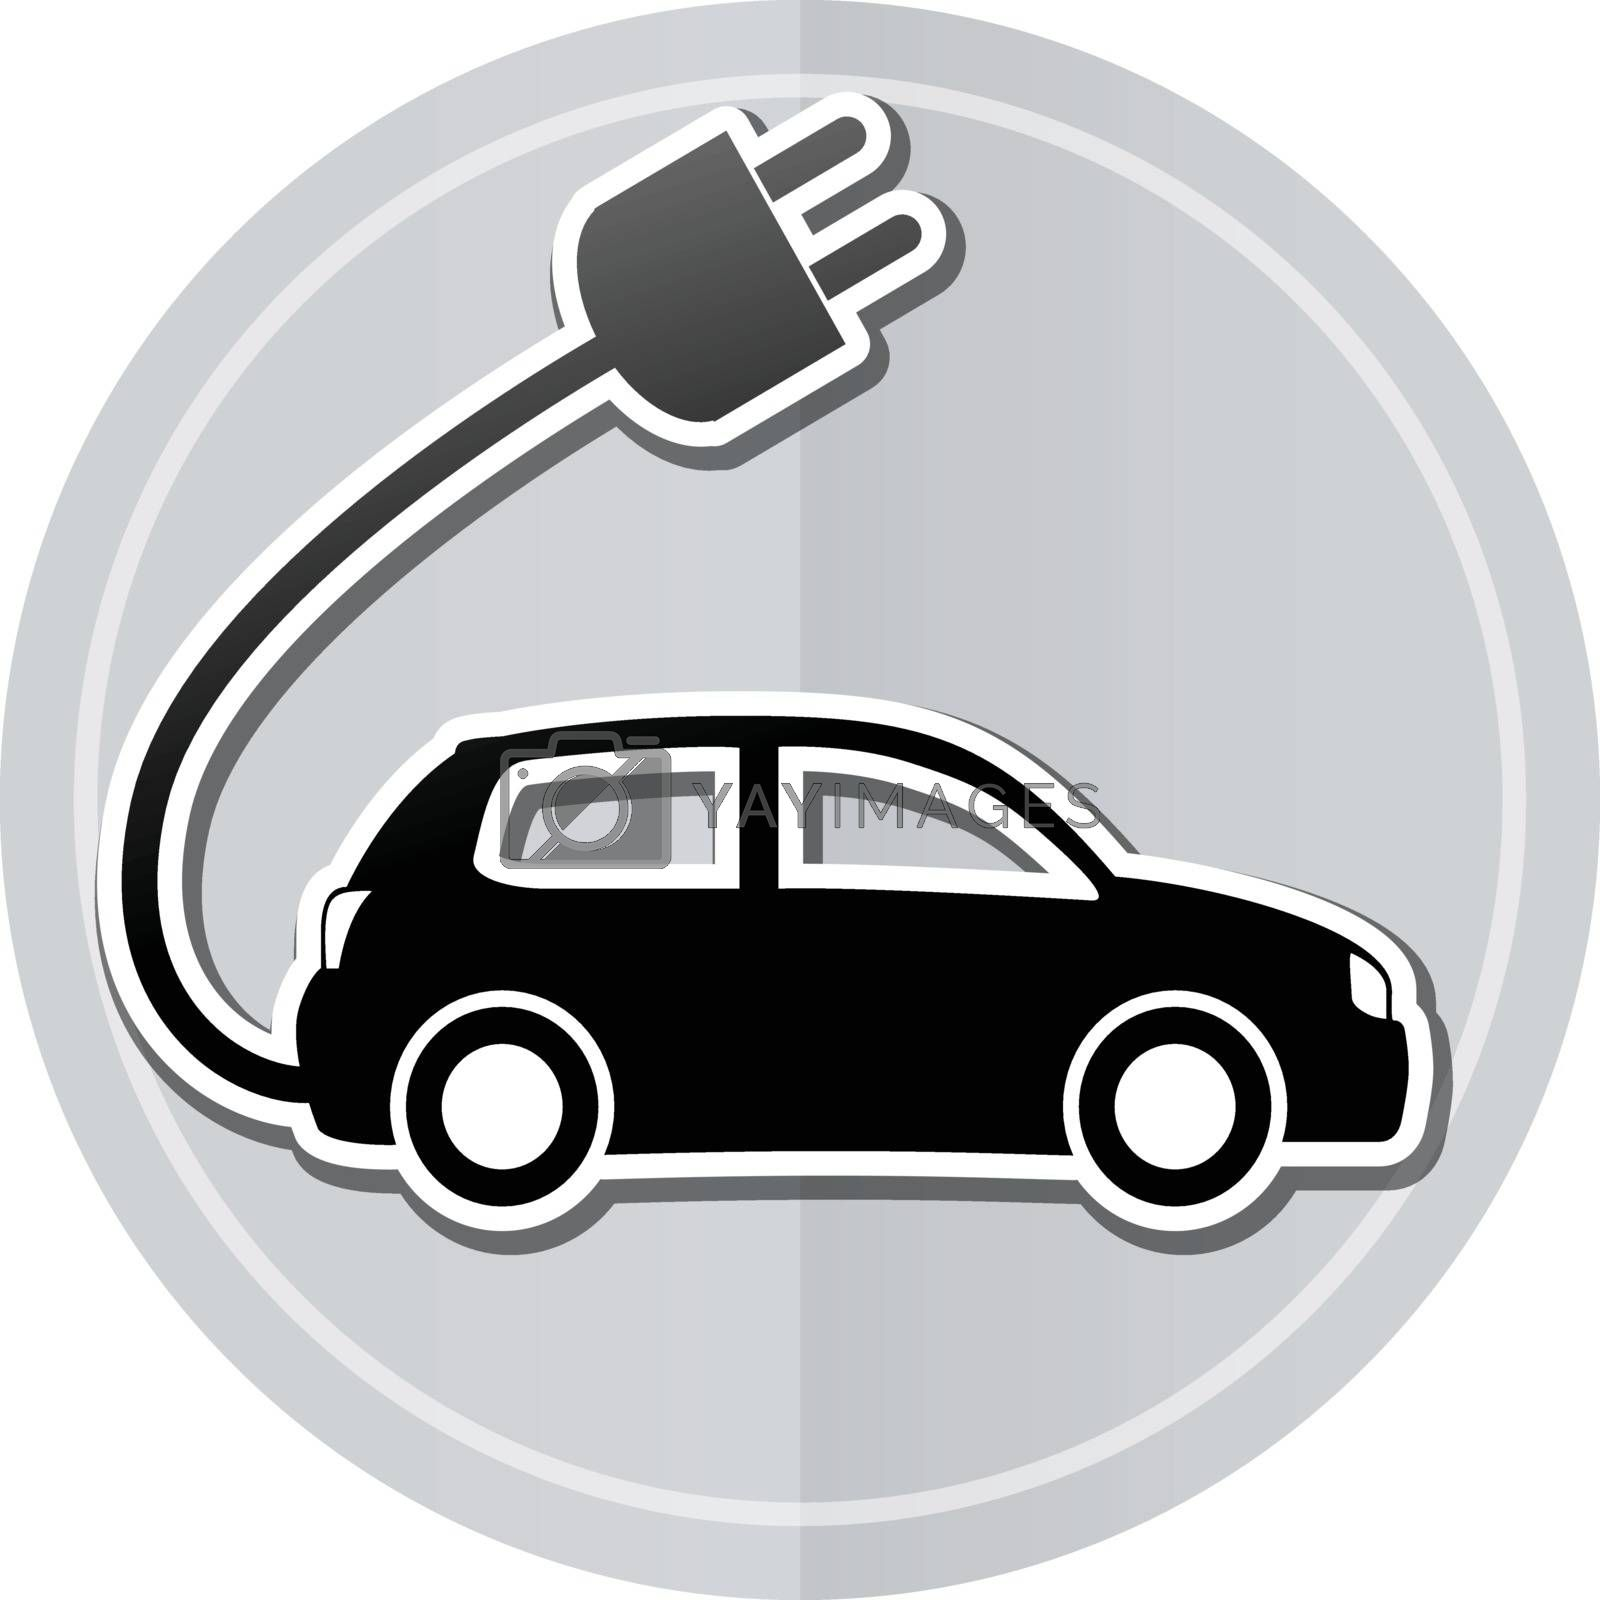 Illustration of electric car sticker icon simple design